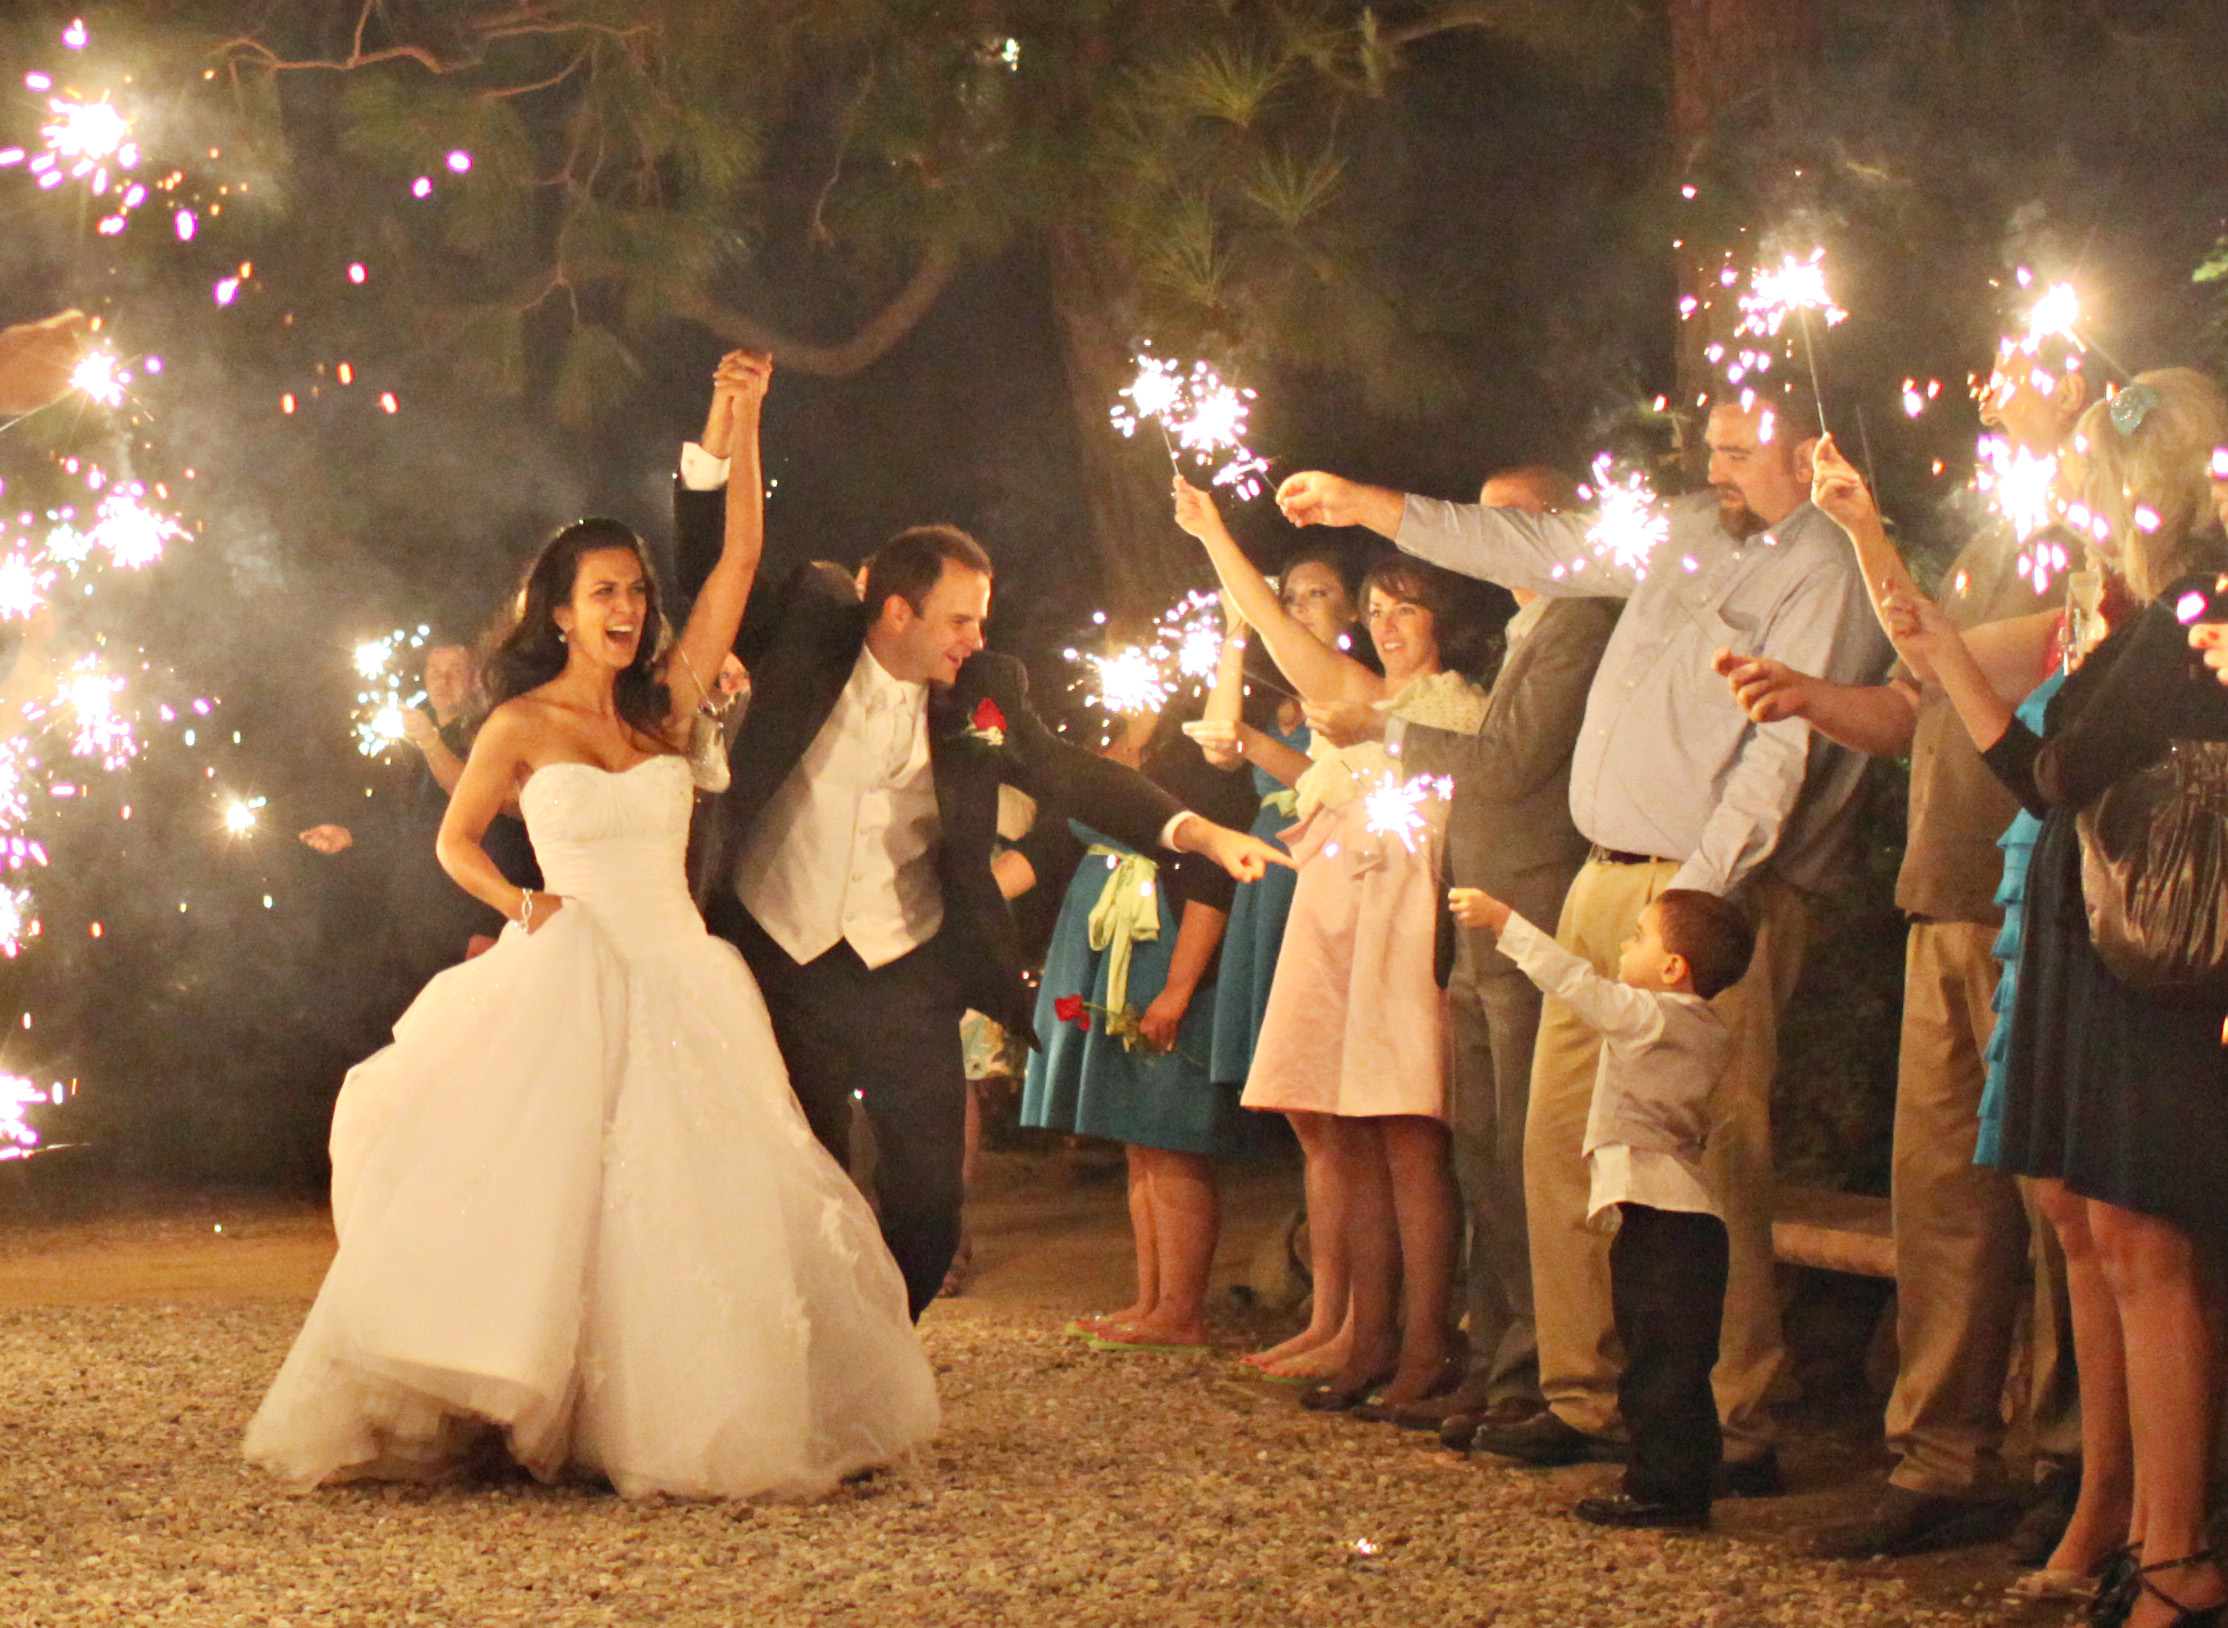 Bride And Groom Sparkler Sendoff Photo By Charise Proctor Los Angeles Wedding Dj La Wedding